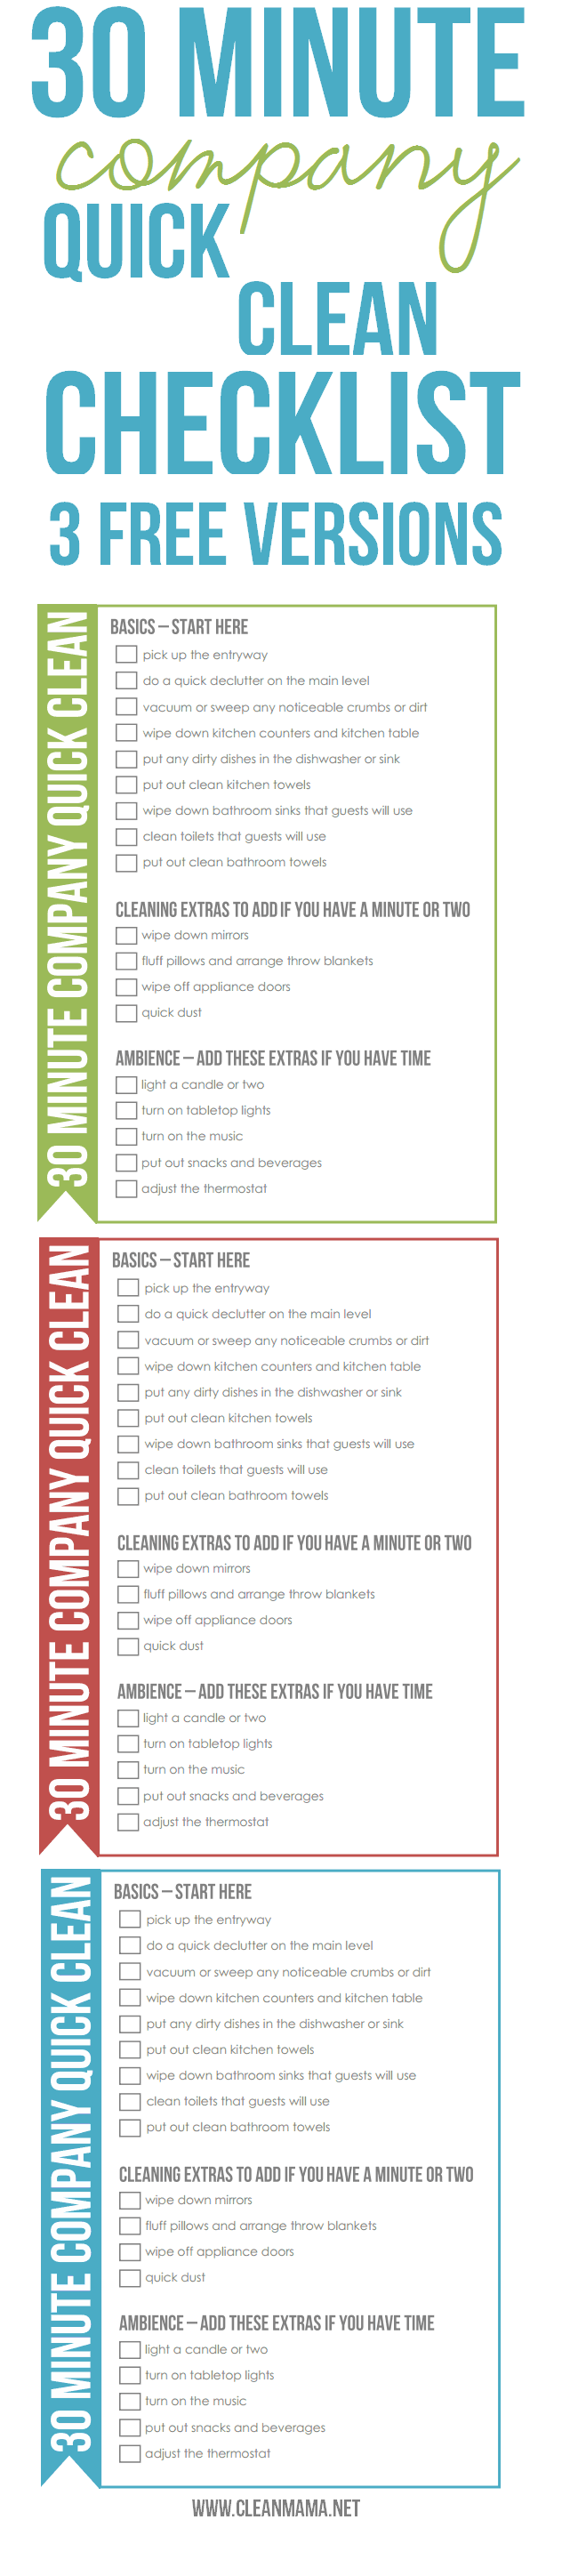 30 minutes quick clean checklist